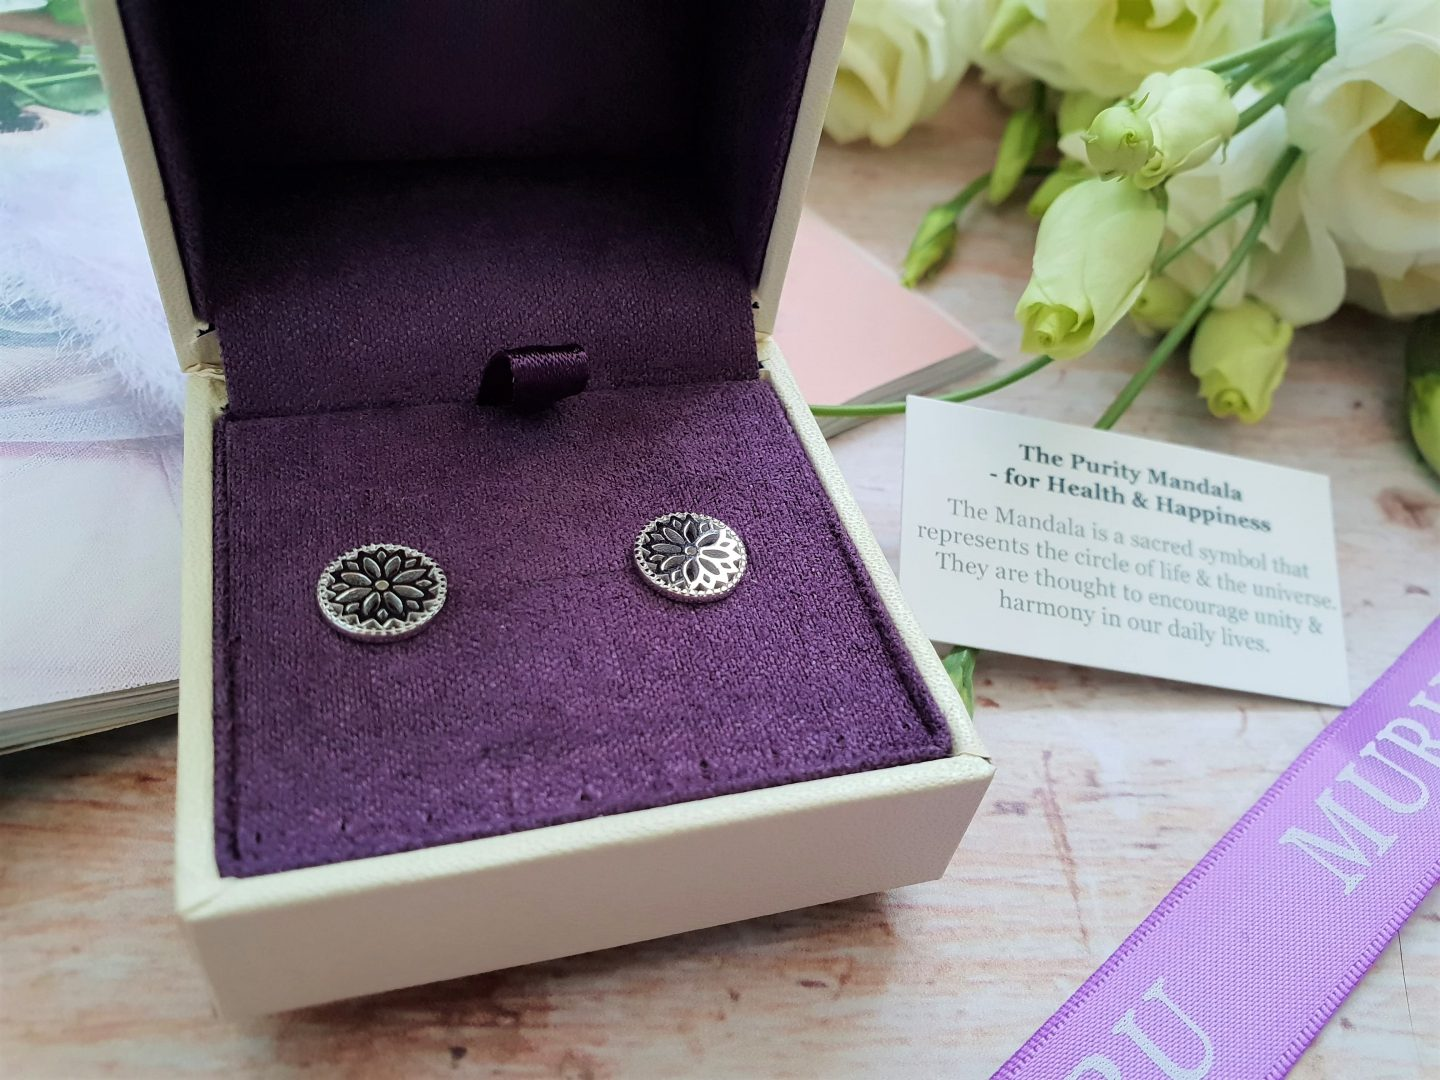 Muru jewellery Health & Happiness mandala earrings